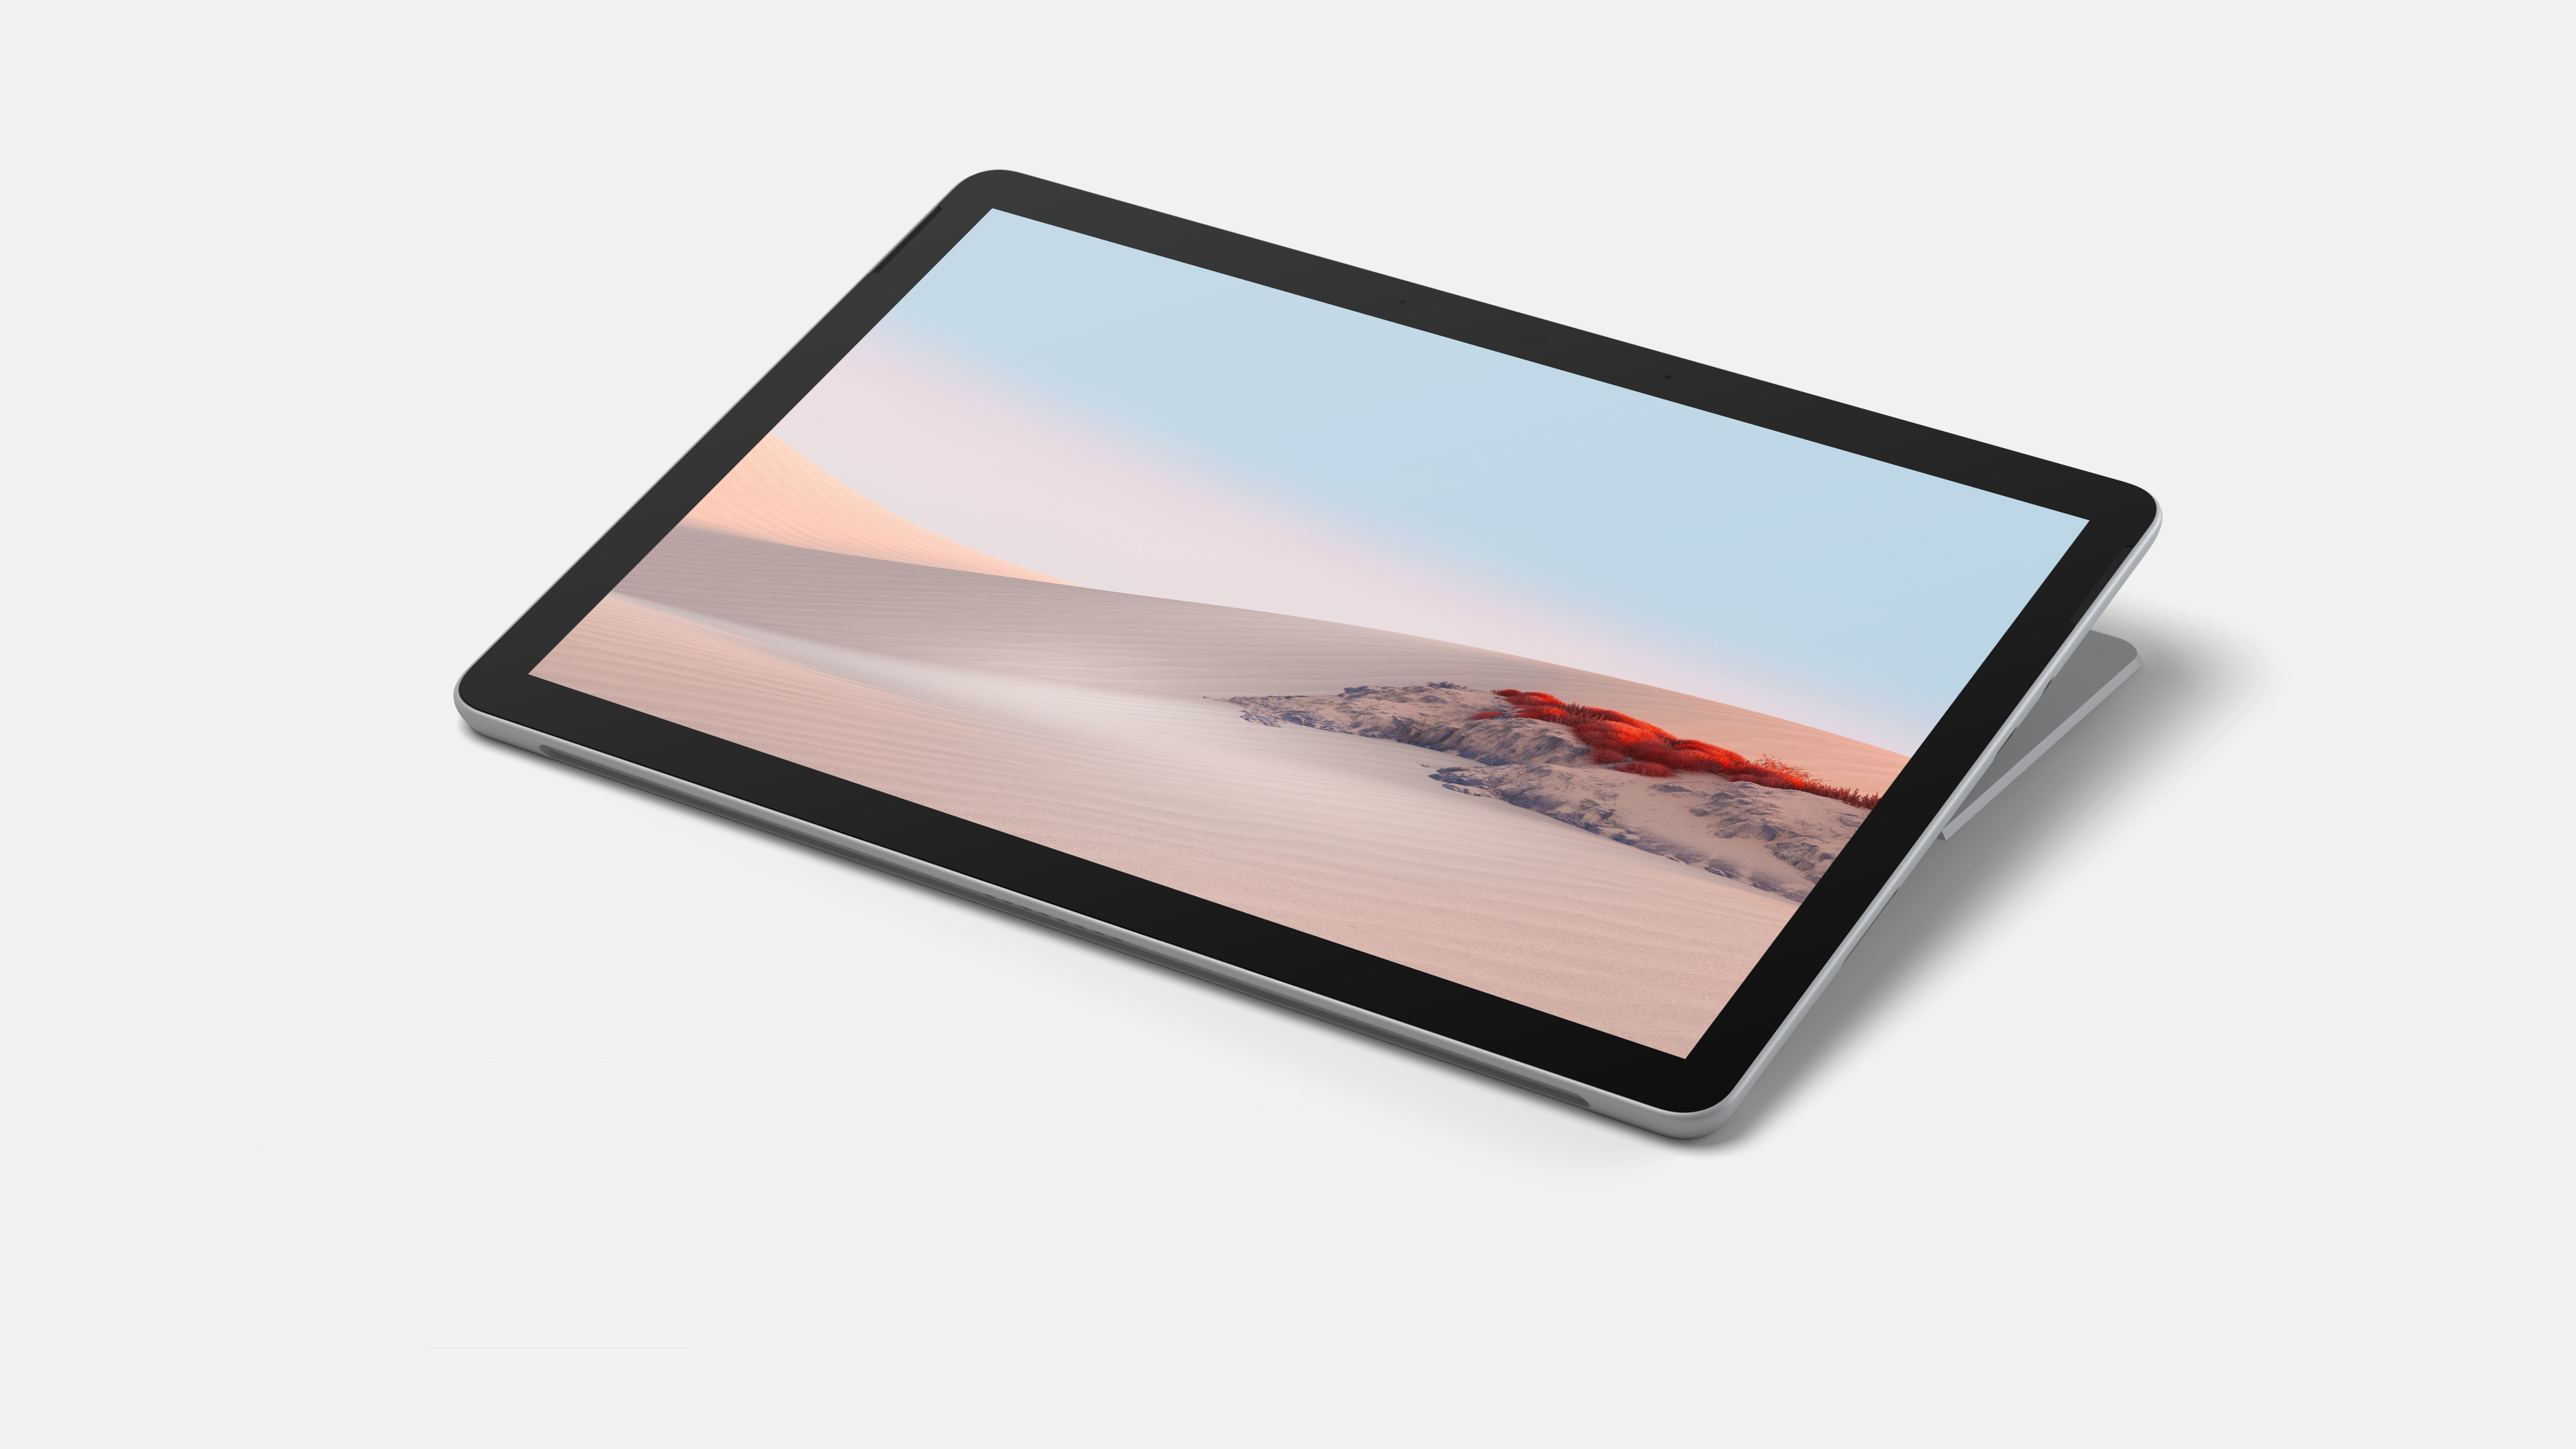 Microsoft Surface Go 2 - Intel Core M3 / 8GB / 128GB; Commercial